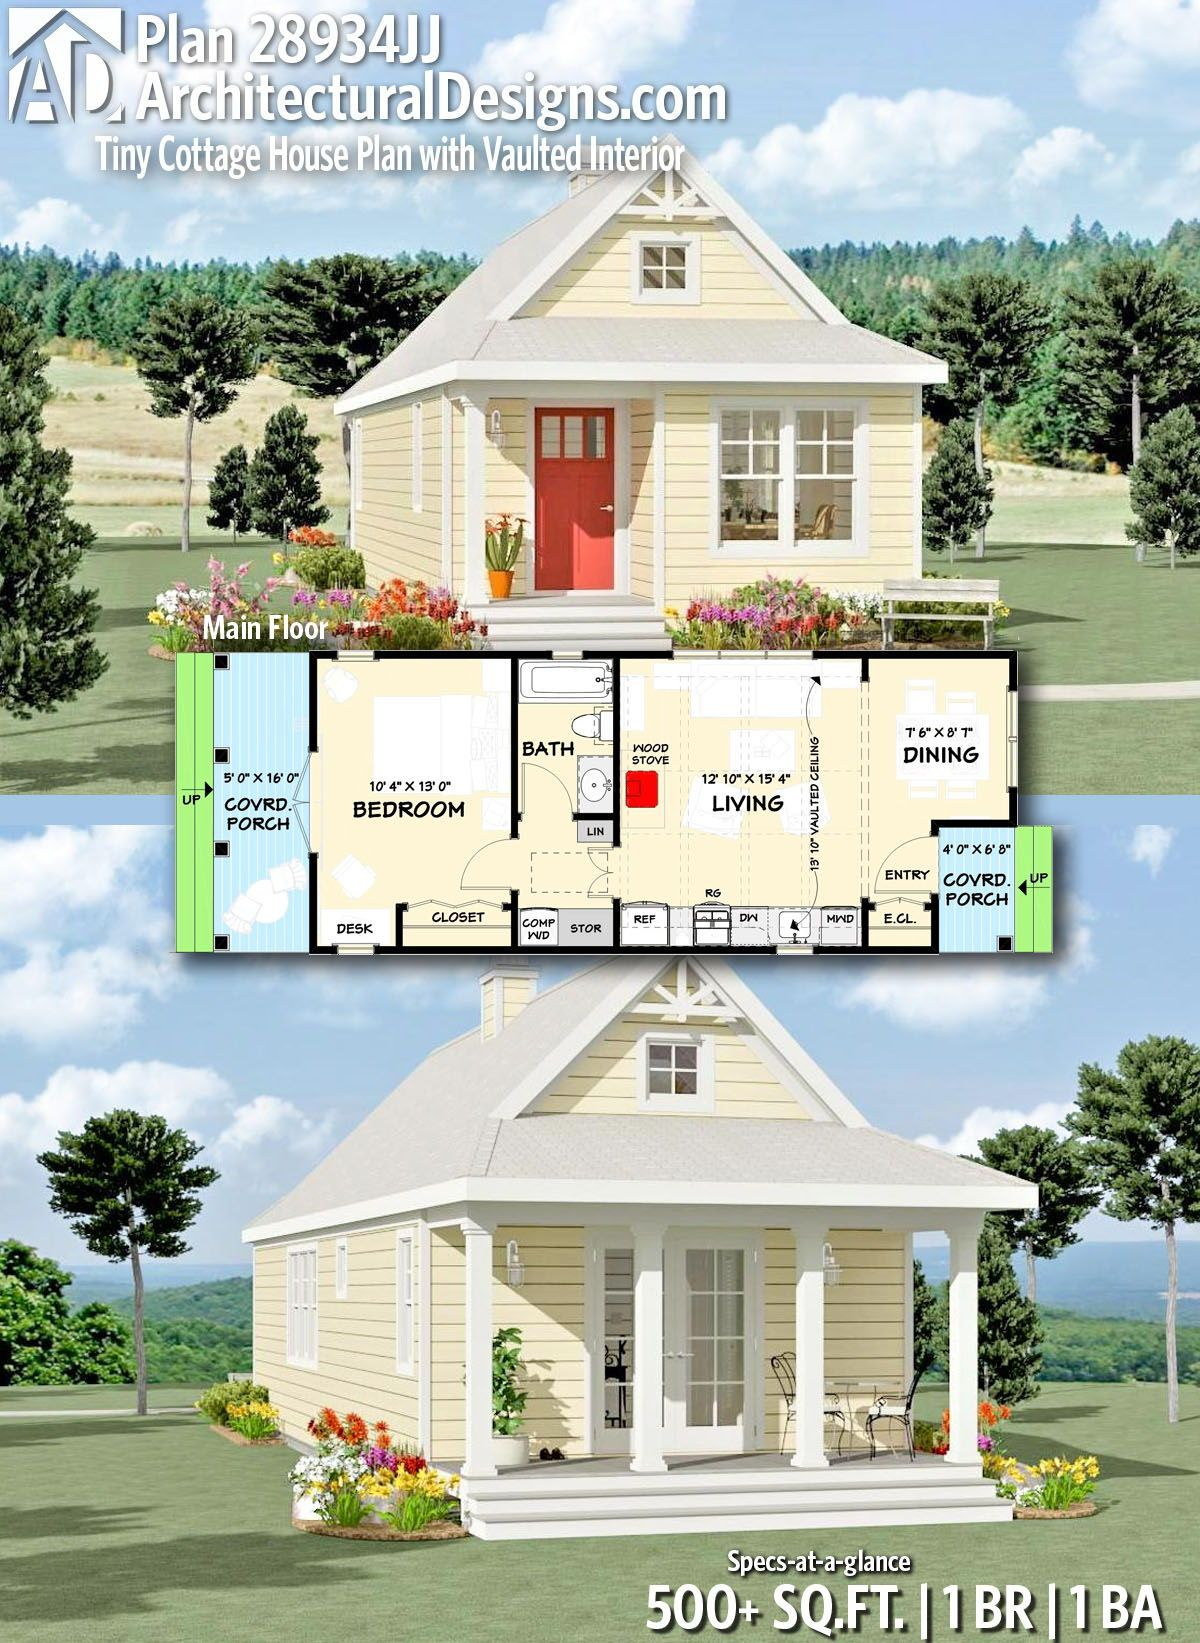 Architectural Designs Tiny House Plan 28934jj Gives You 1 Bedrooms 1 Baths And 500 Sq Ft Small Cottage House Plans Cottage House Plans Small Cottage Homes